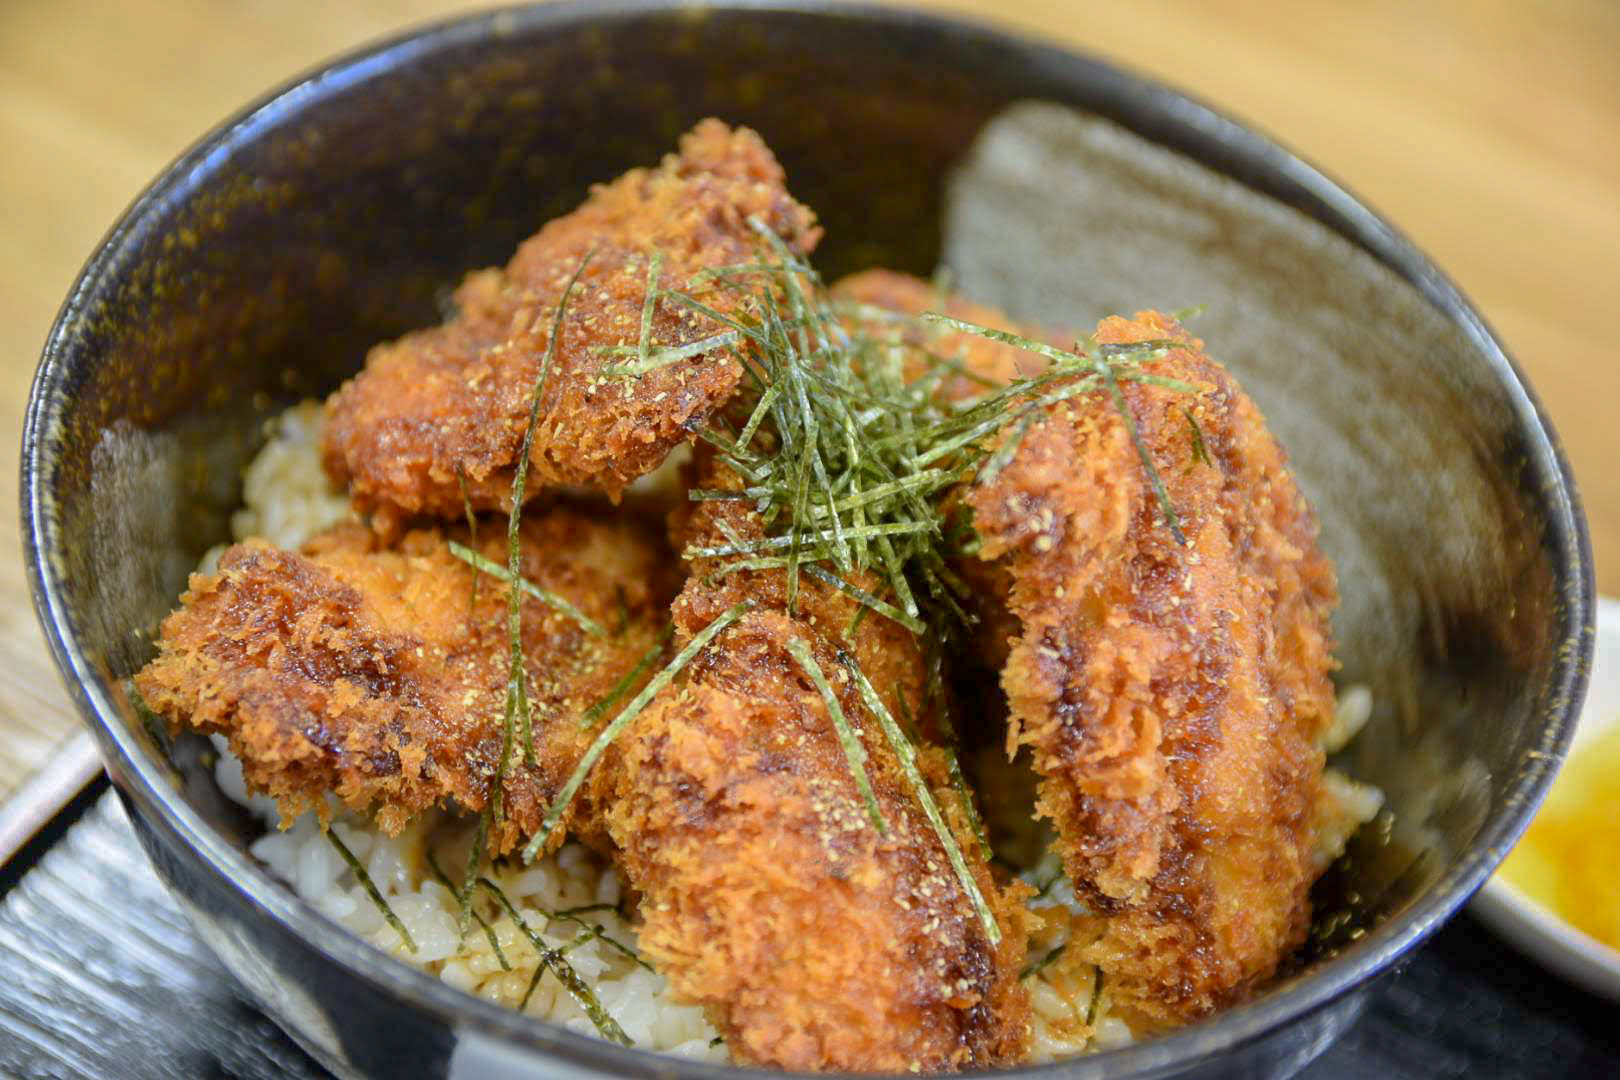 CHICKEN&CURRYのお店 さっちゃんハウス